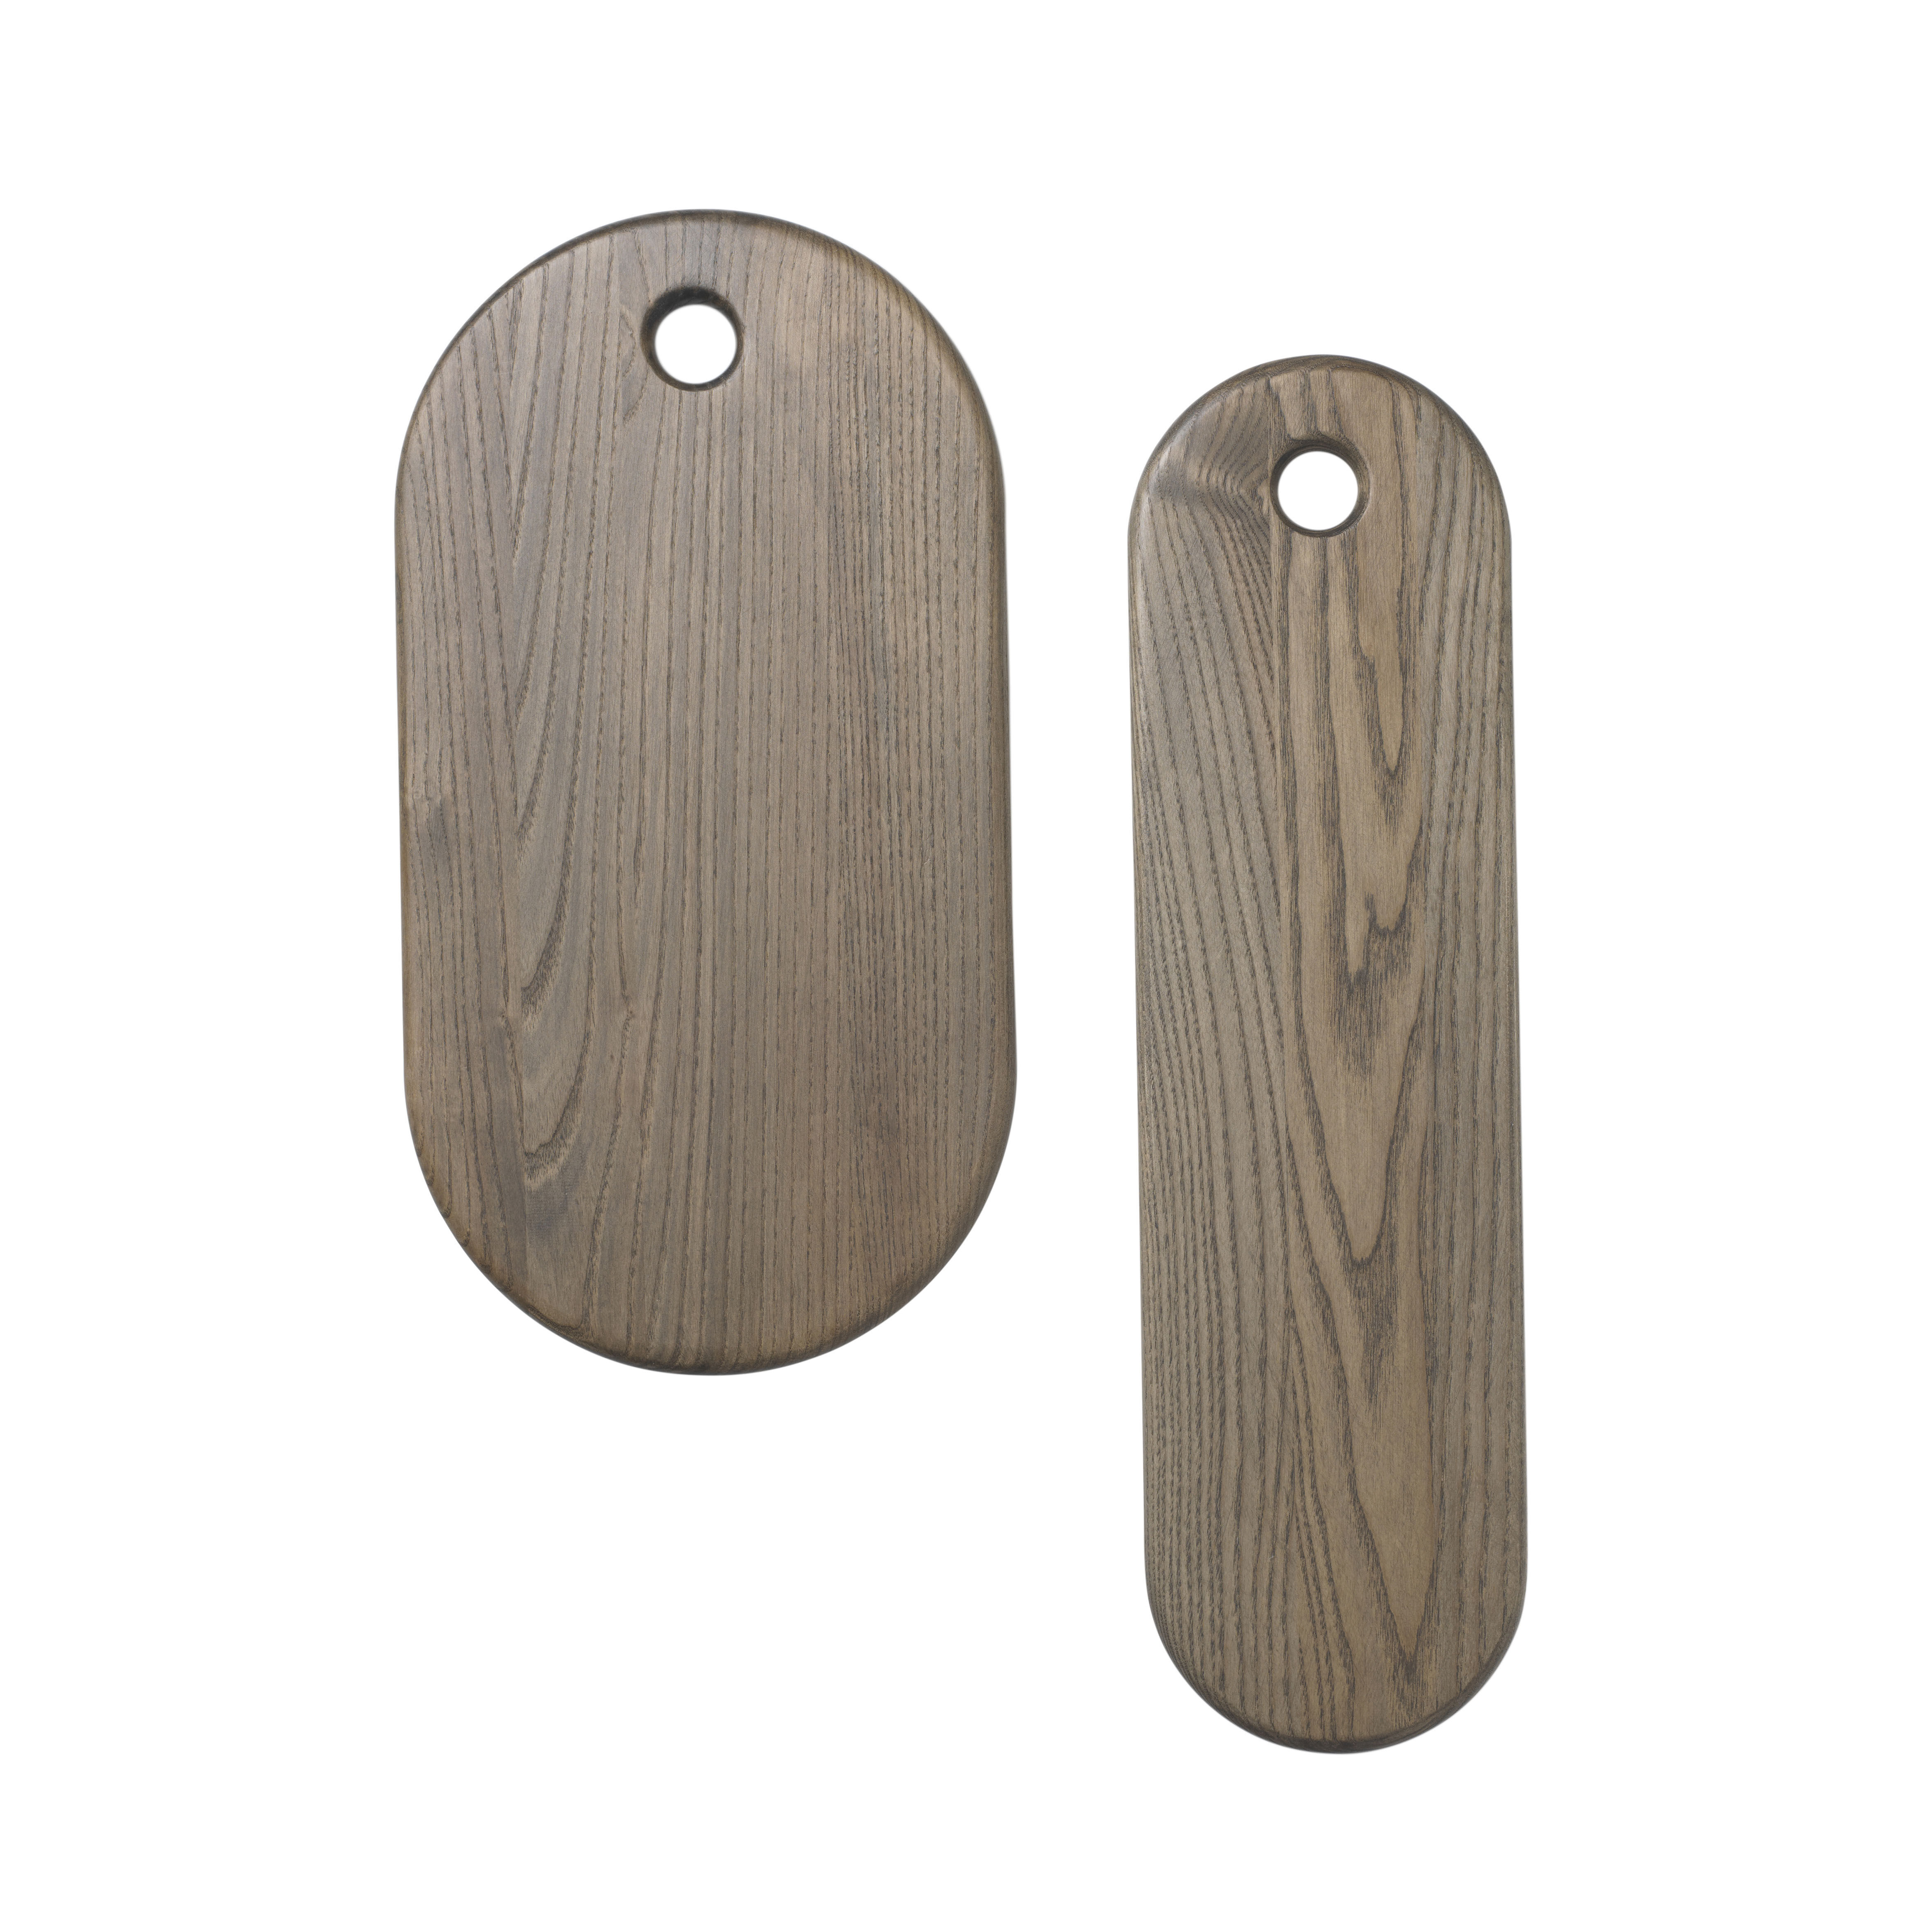 Kitchenware - Kitchen Equipment - Stage Chopping board - / Set of 2 - Ash by Ferm Living - Rustic grey - Frêne massif verni